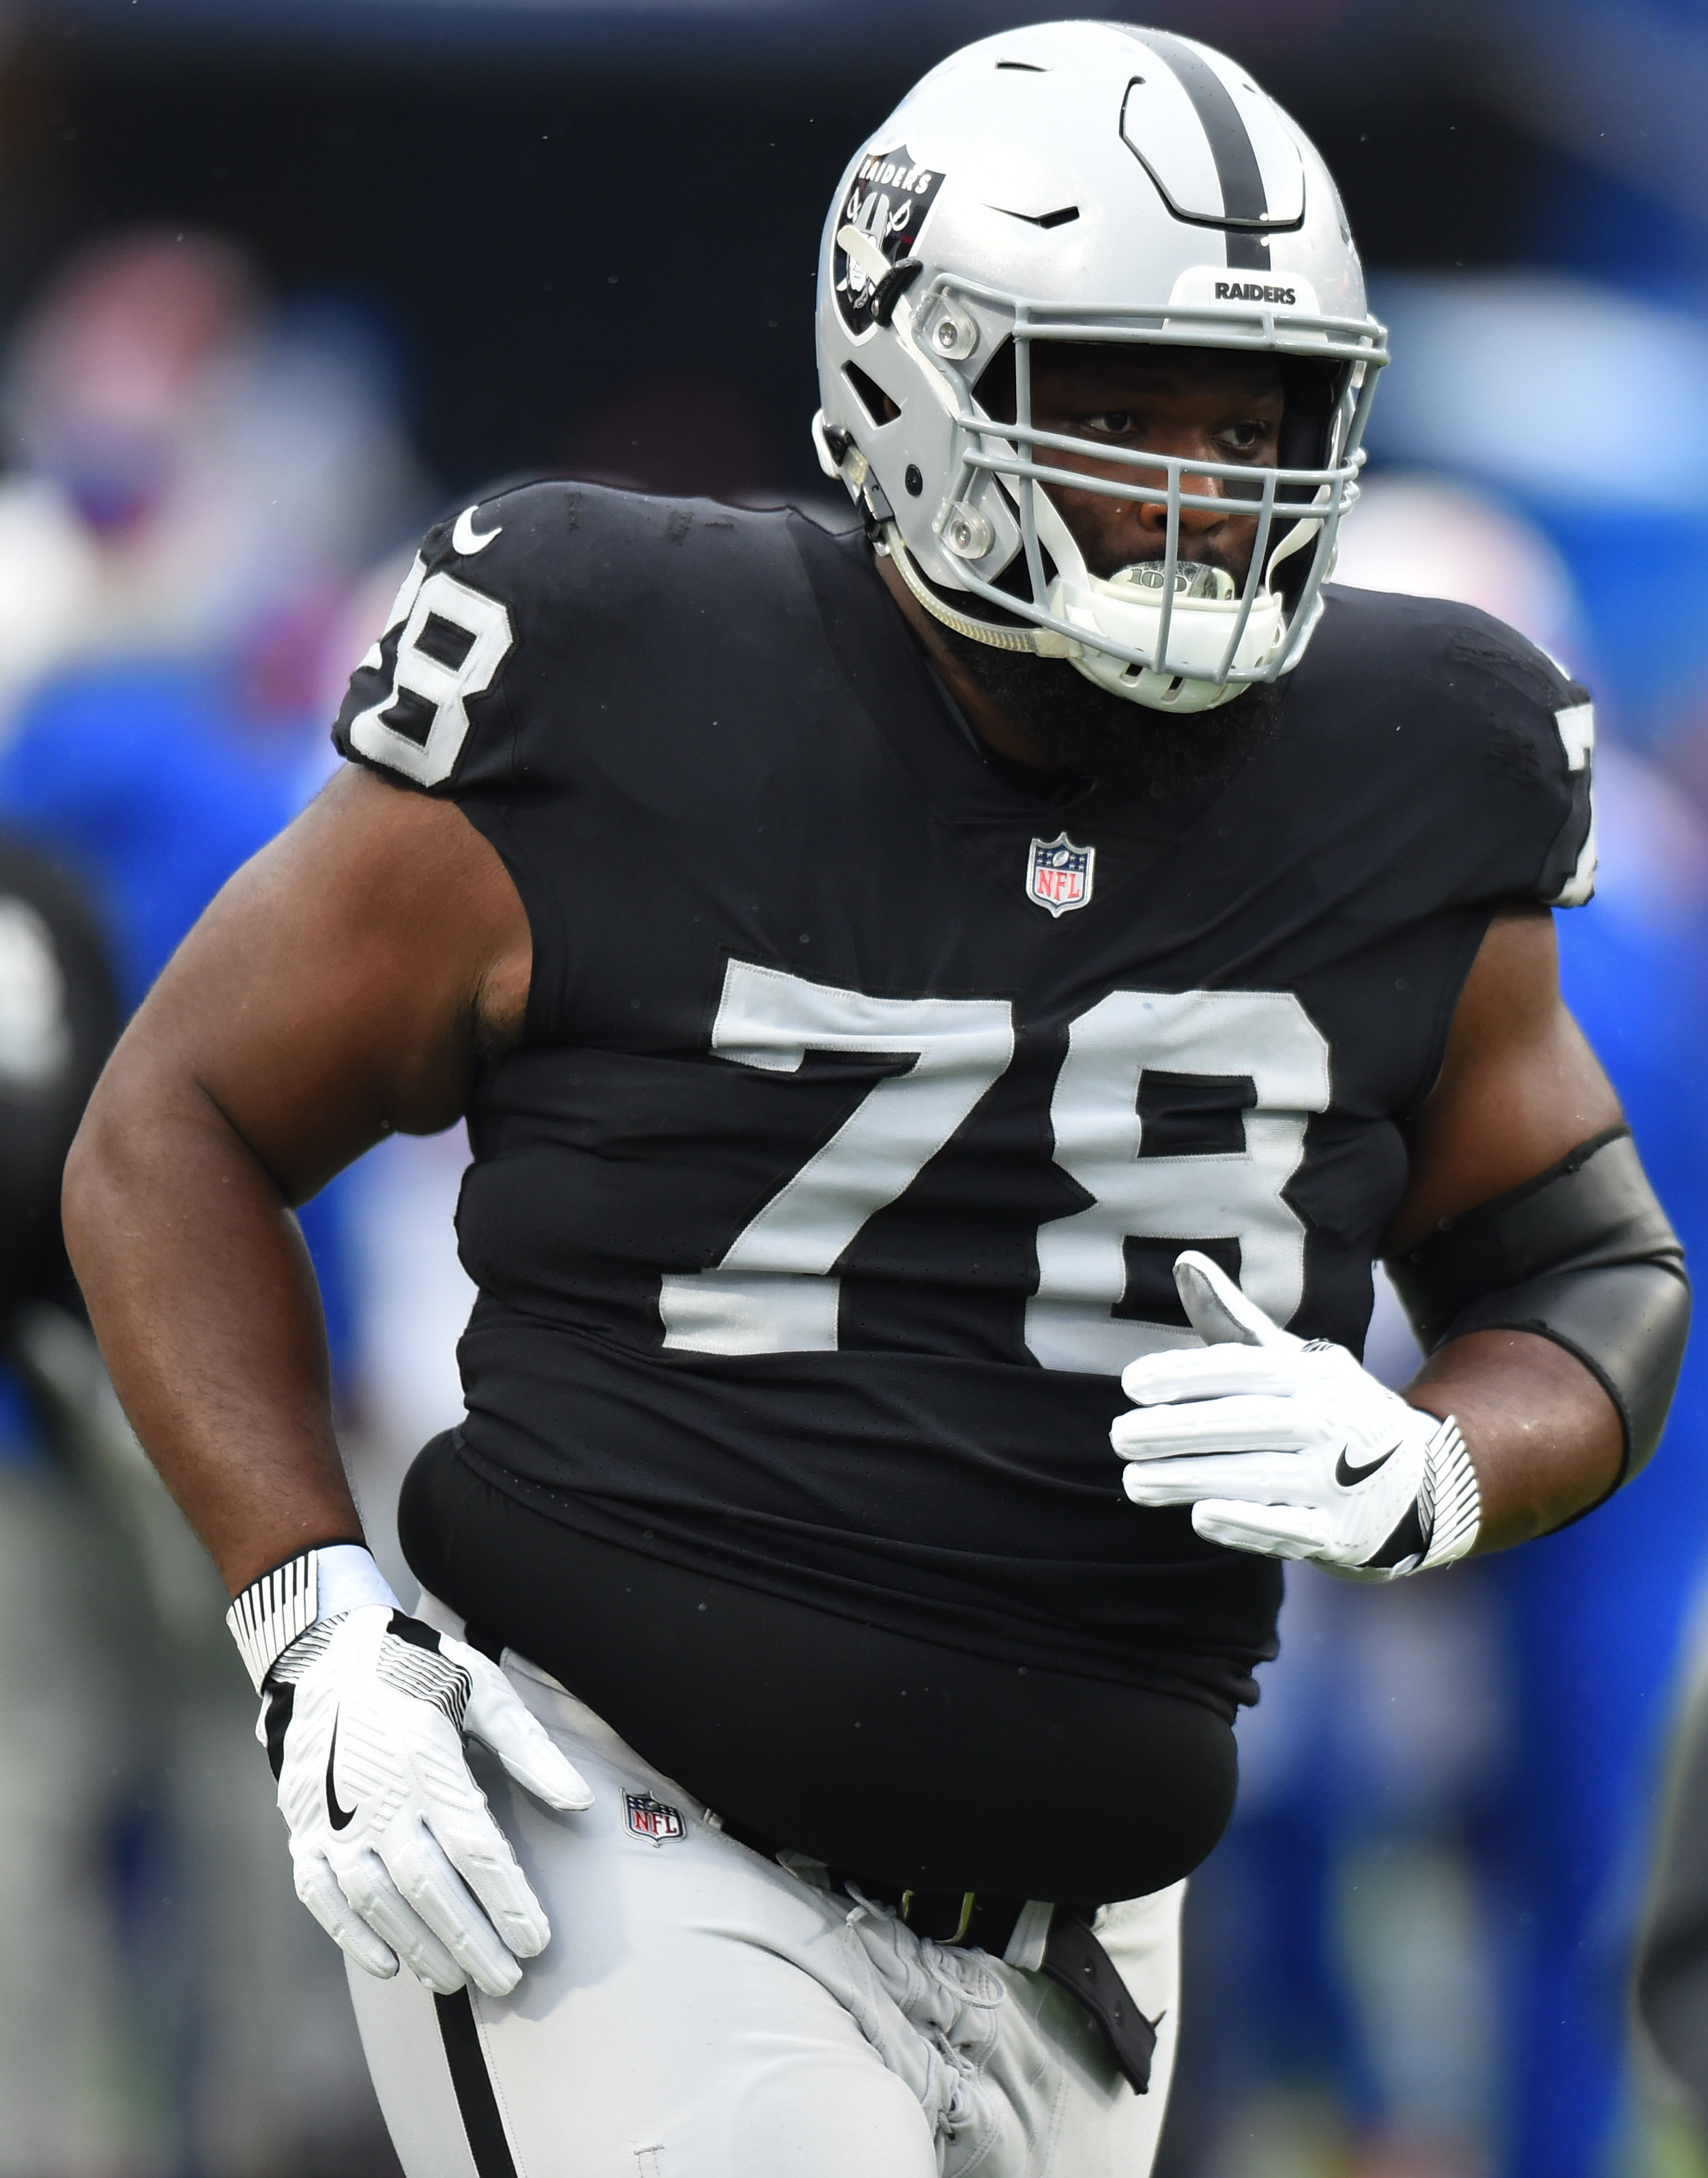 a750104c15c Raiders defensive tackle Justin Ellis has agreed to terms on a three-year  deal worth more than  15MM